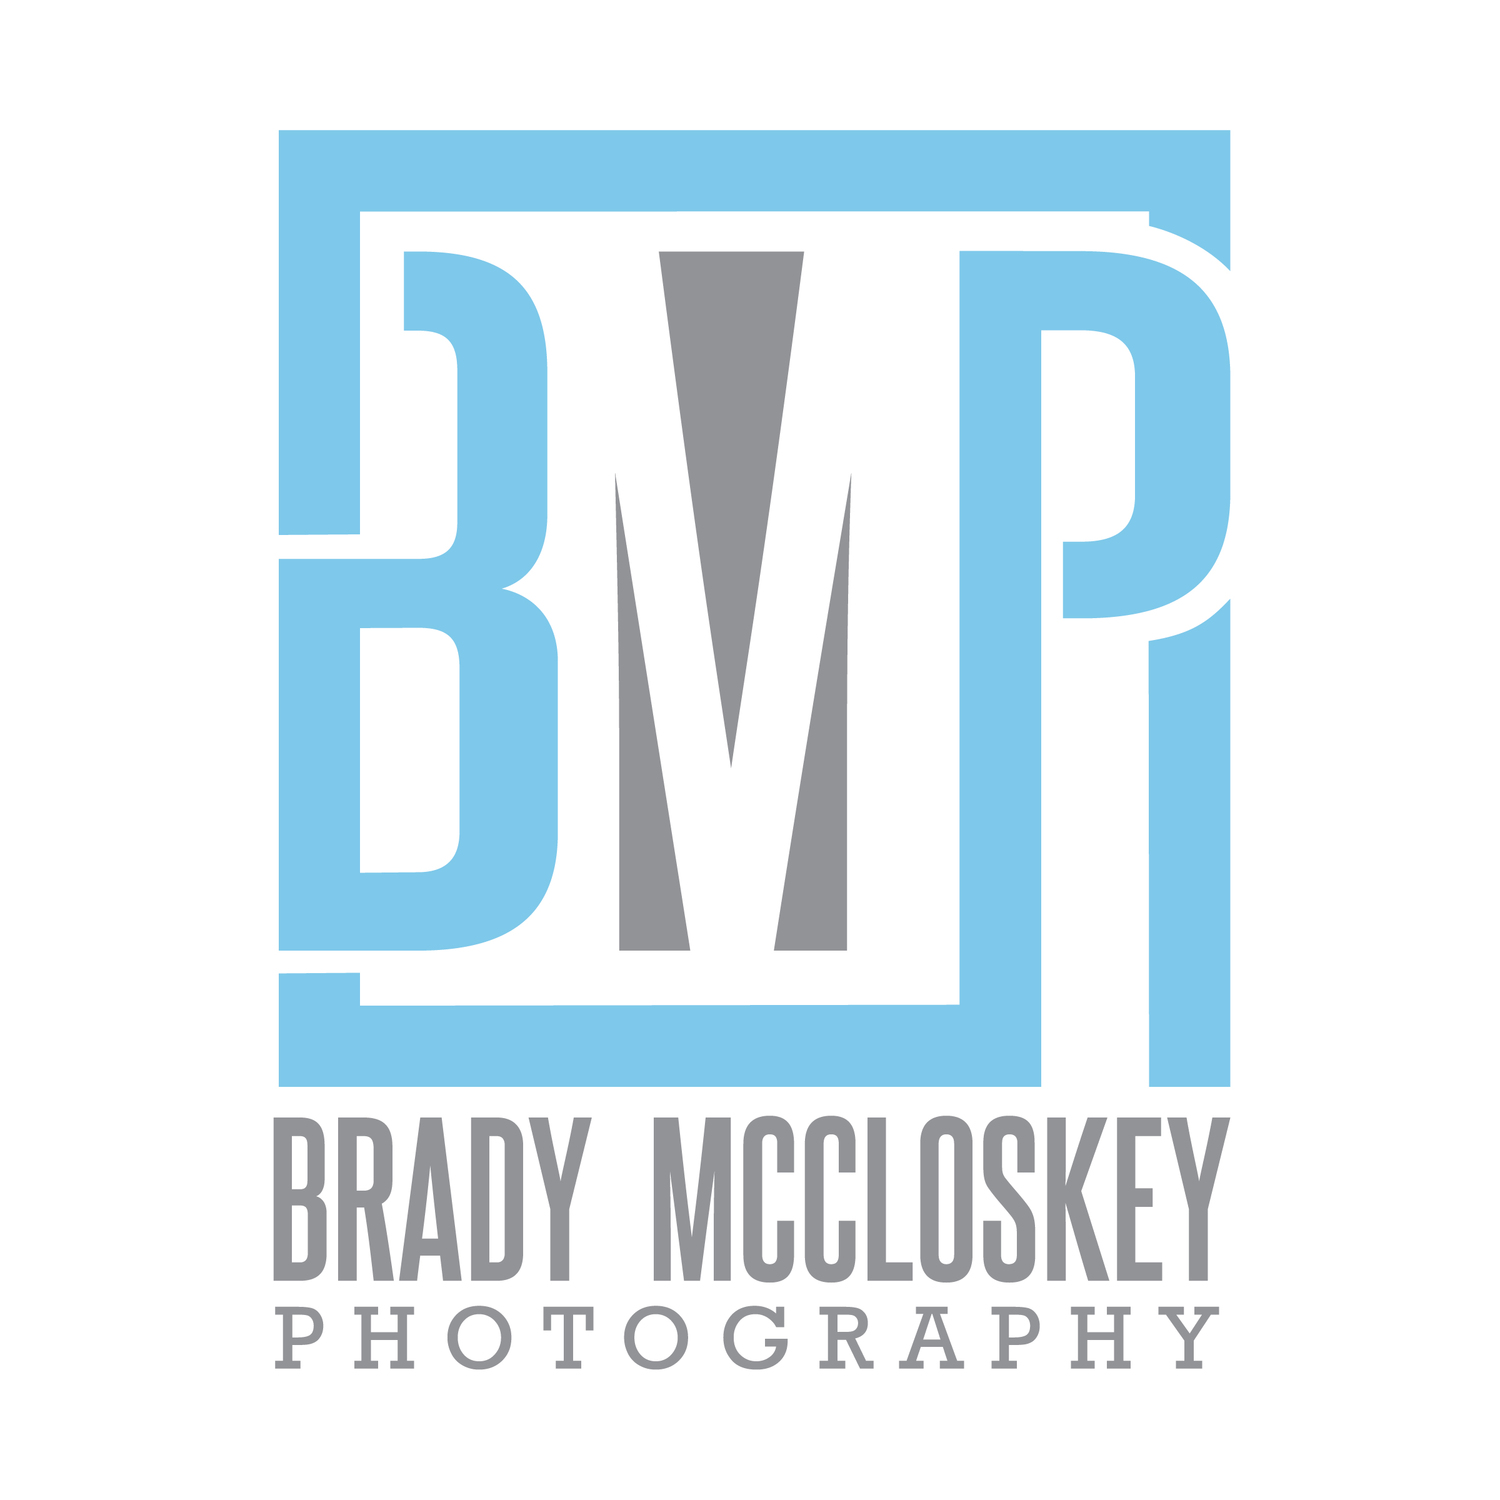 Brady McCloskey Photography